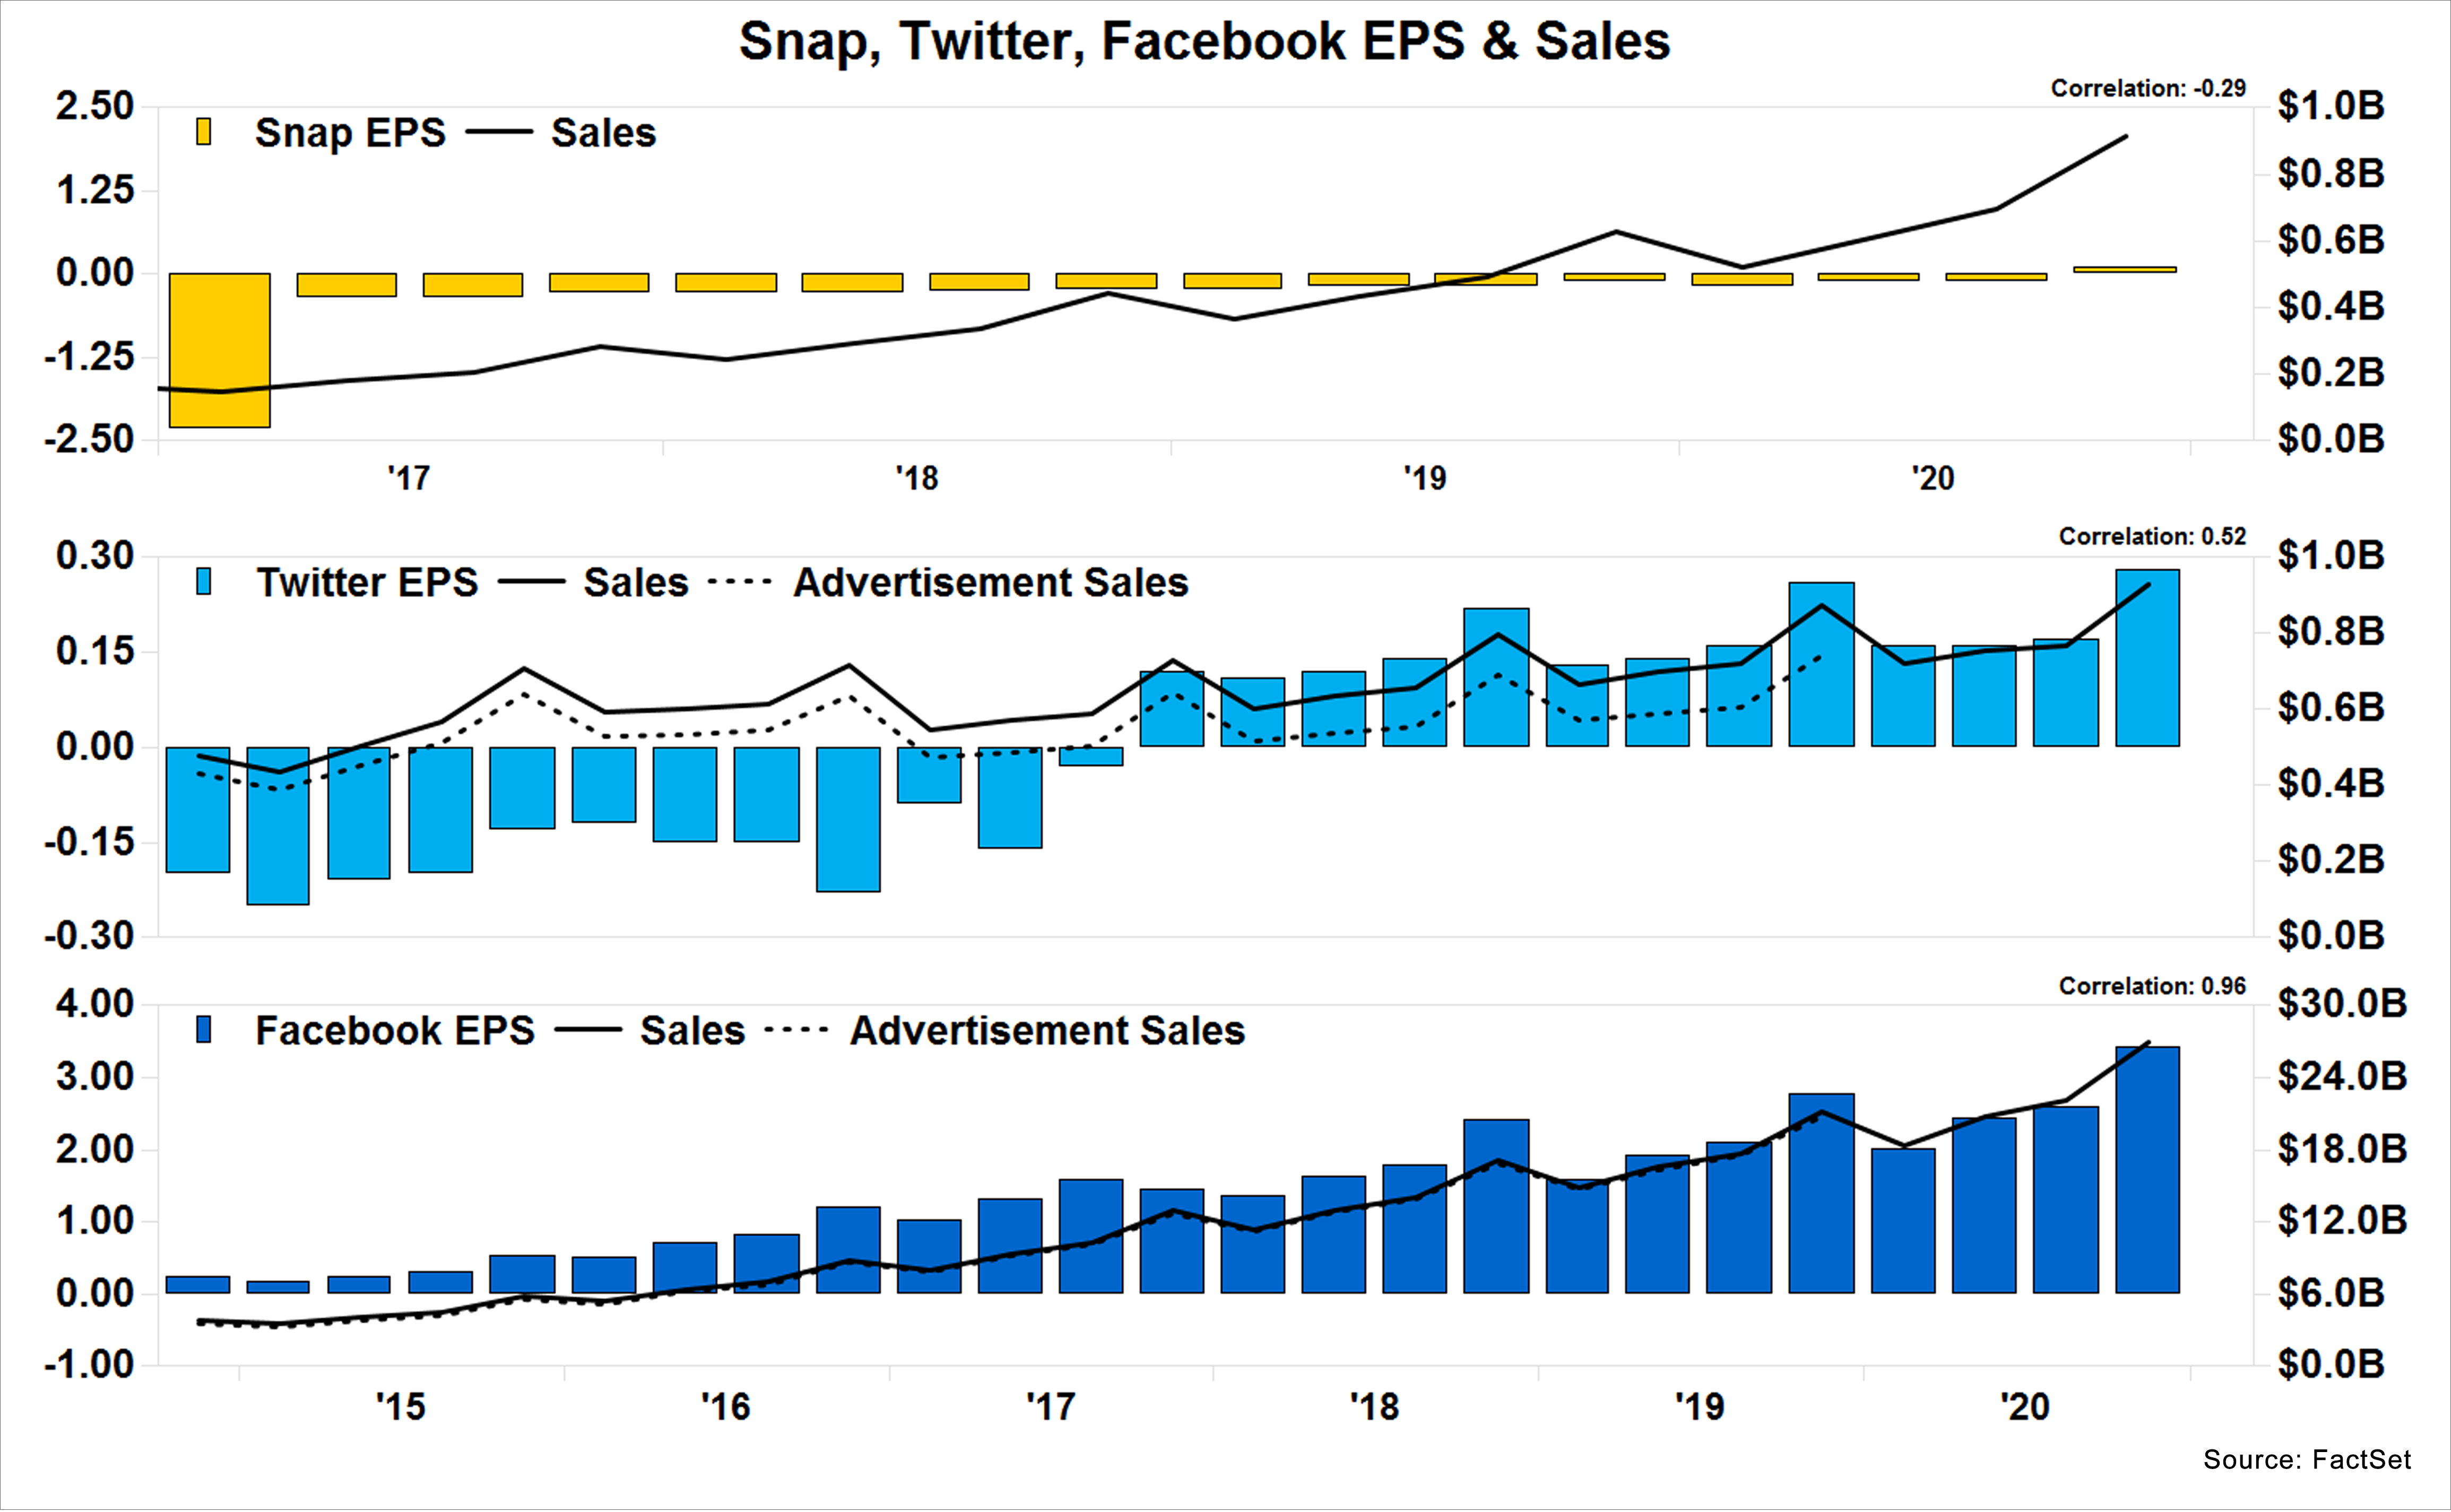 Snap Twitter Facebook EPS and Sales